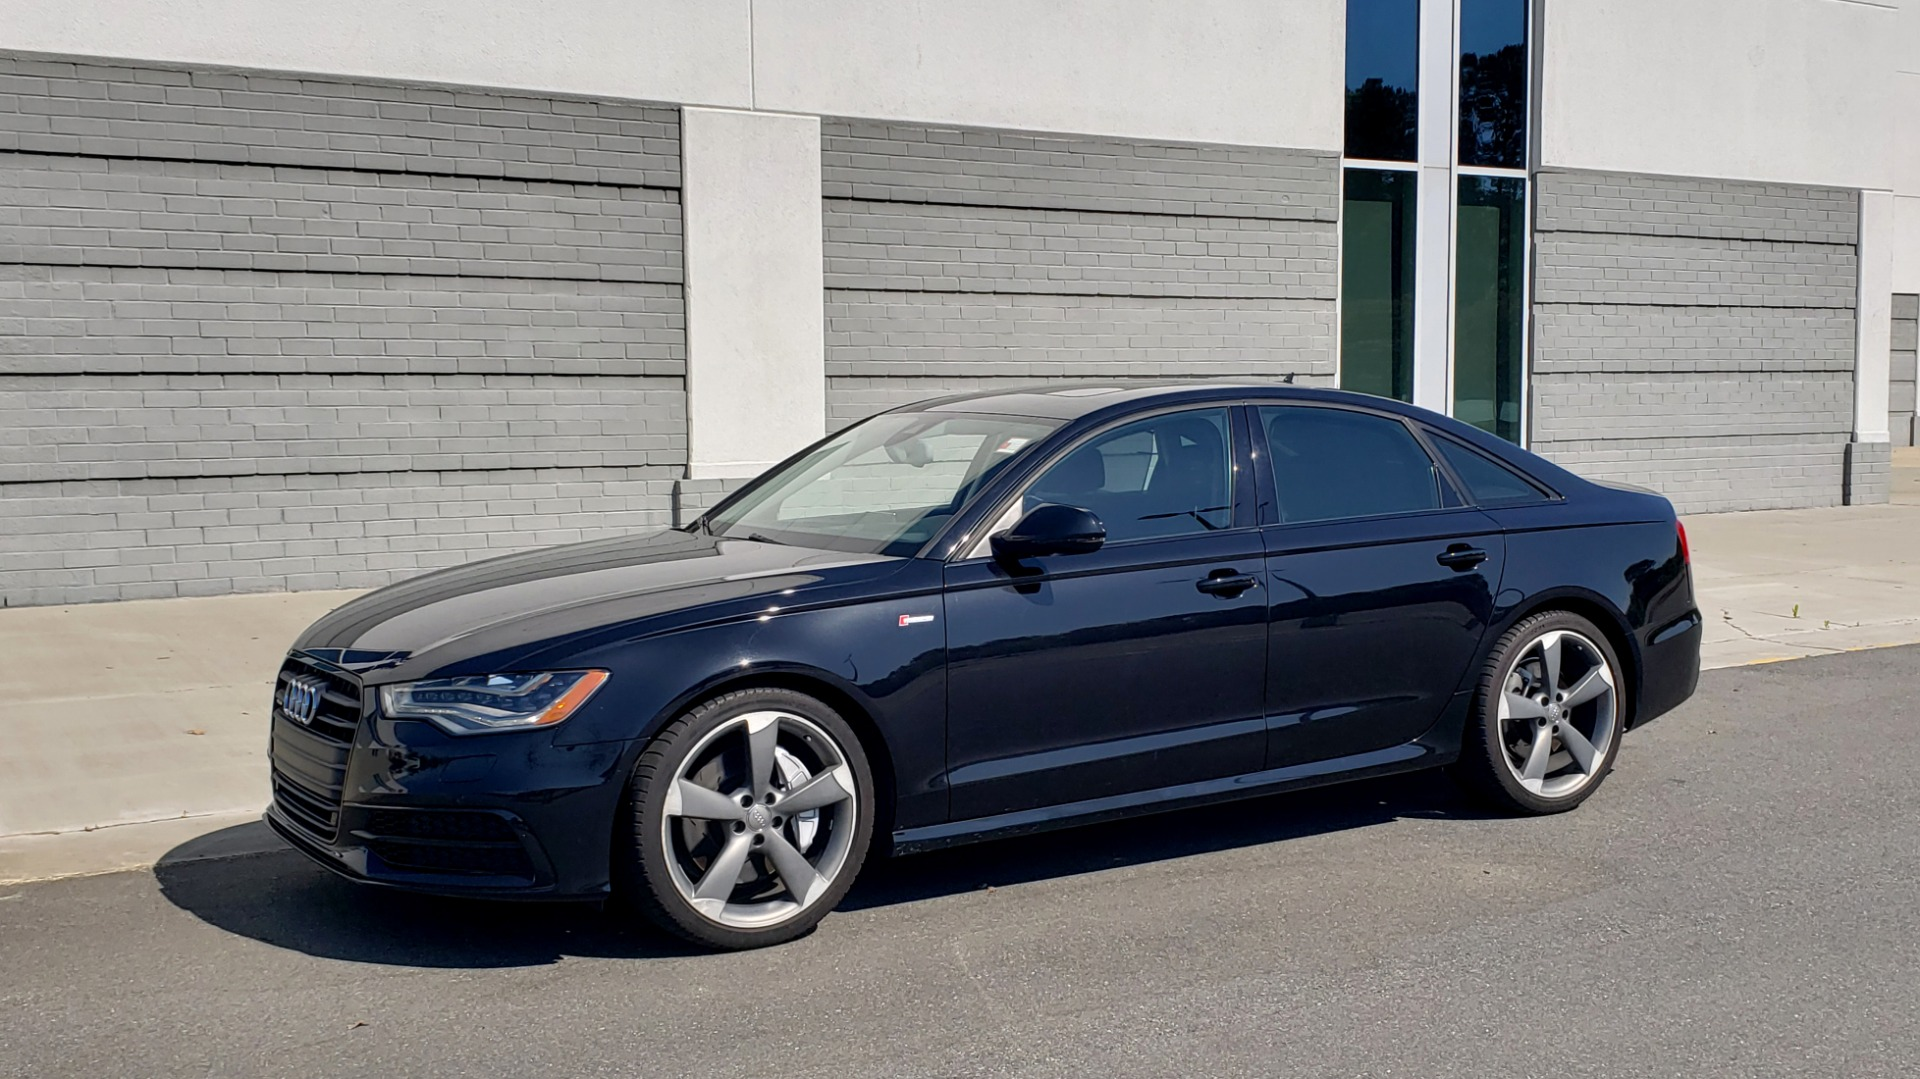 Used 2015 Audi A6 3.0T PRESTIGE / BLACK OPTIC / CLD WTHR / BOSE / HUD / SUNROOF for sale Sold at Formula Imports in Charlotte NC 28227 3